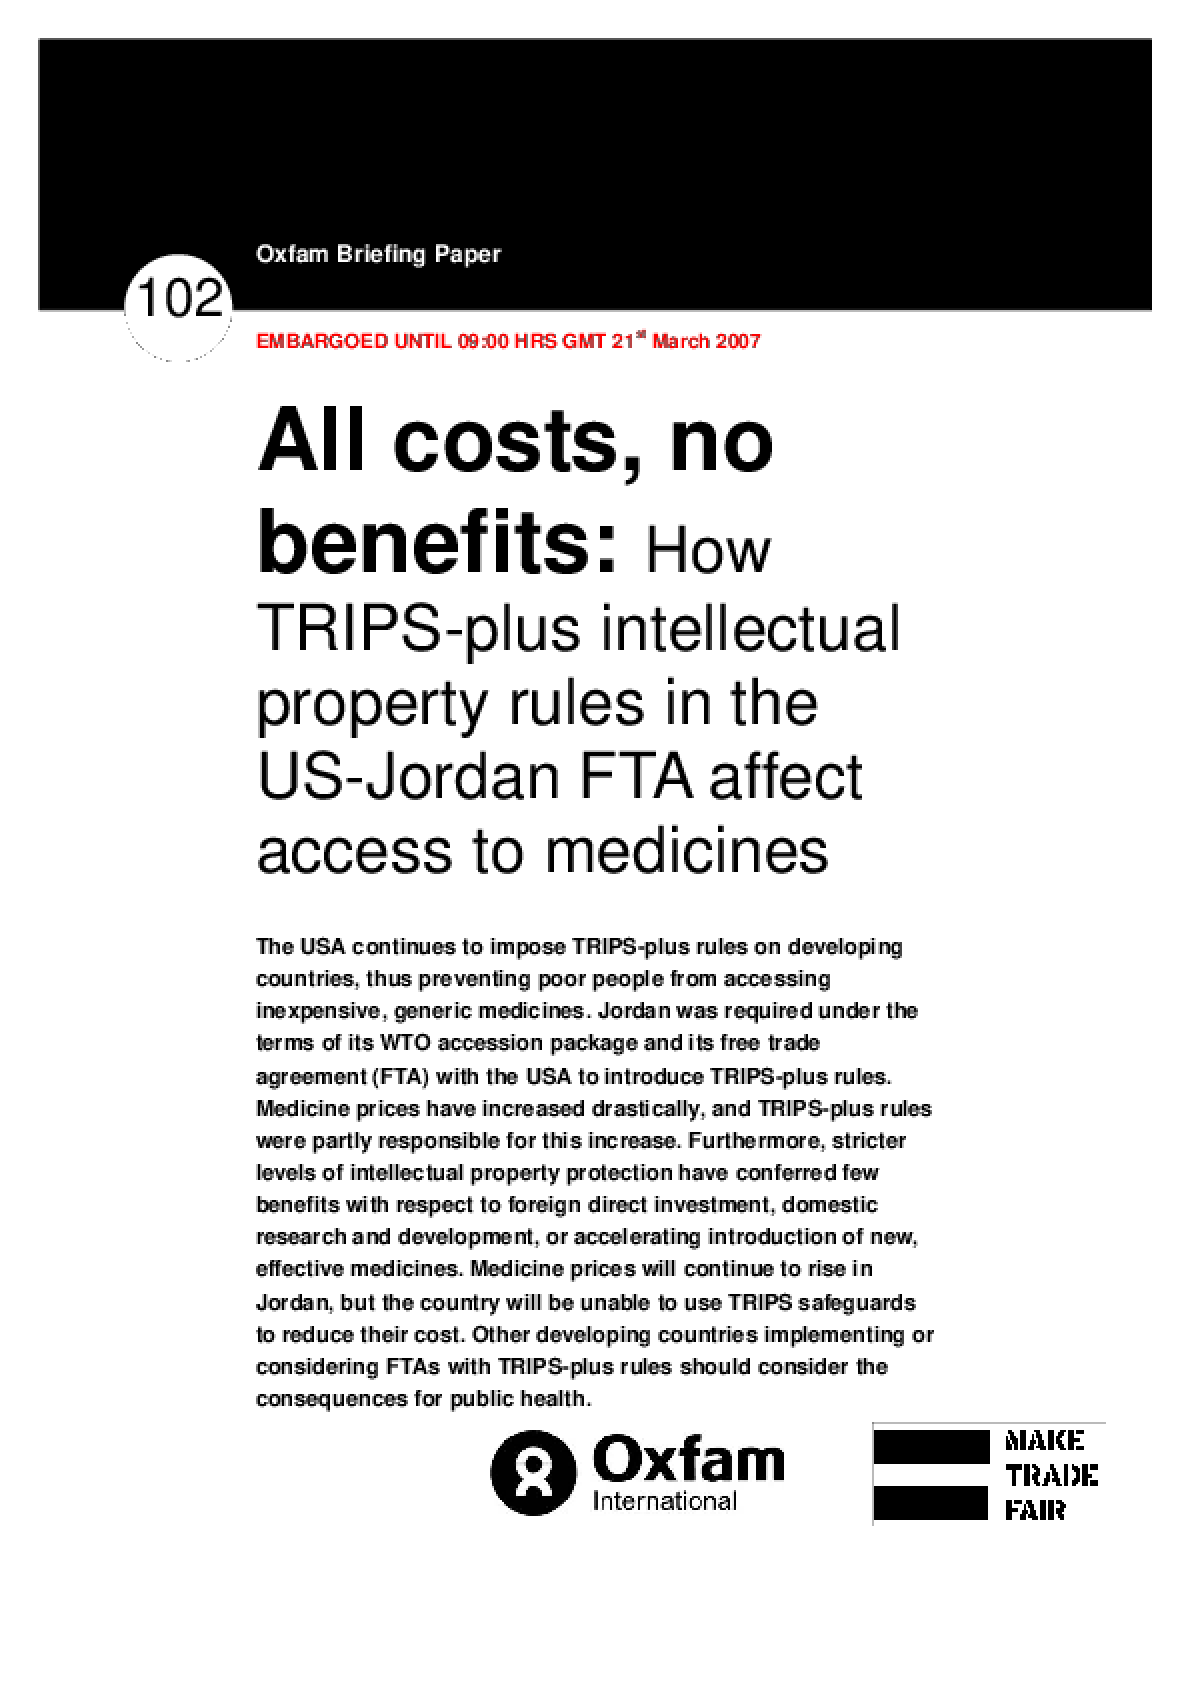 All Costs, No Benefits: How TRIPS plus intellectual property rules in the US-Jordan FTA affect access to medicines